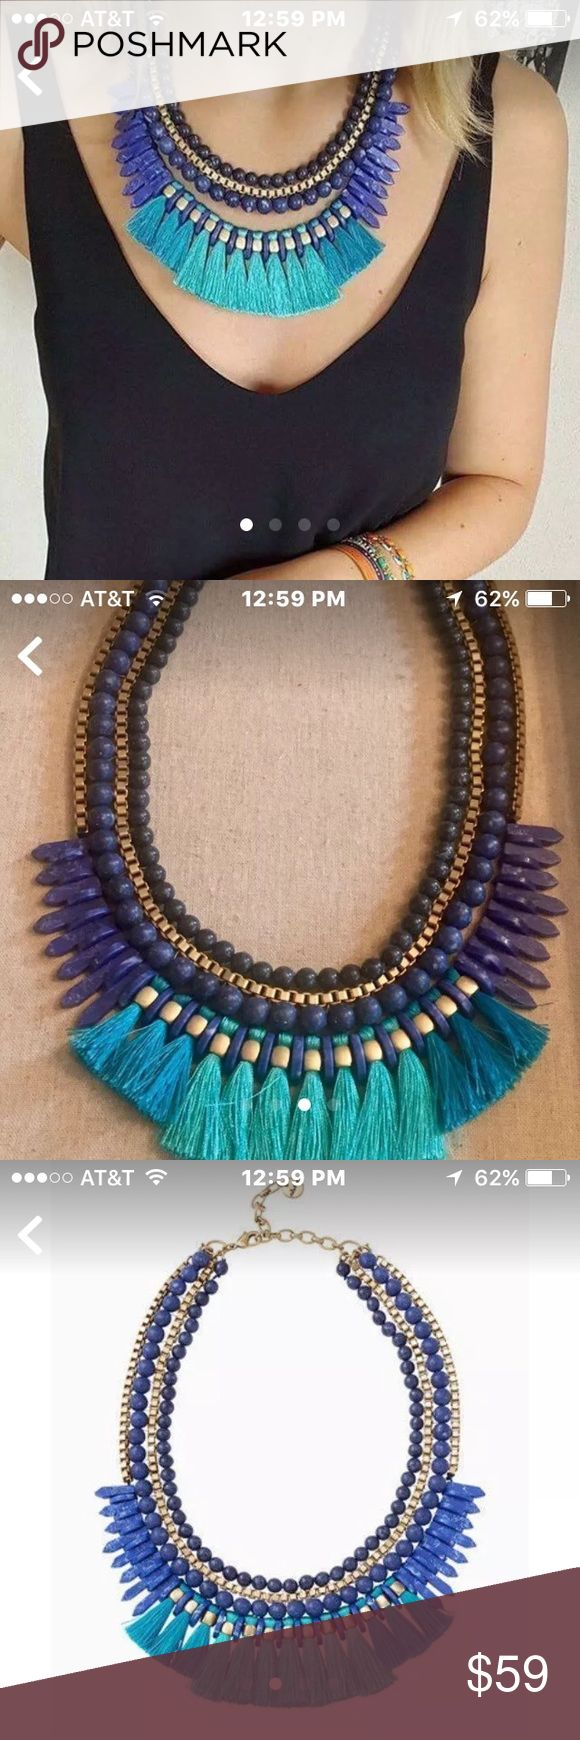 """Tresse Statement Necklace-S&D-Mint Condition This necklace is STUNNING !! I have one of my own !!  Hand strung  lapis colored beads and vintage gold chain brilliantly come together with bright turquoise  and cerulean tassels. Tassel strand detaches to wear this Statement together or separately. Versatile 3 in 1. Normally $119, on sale until 12/15. Feel free to request more pictures or information.  * lobster clasp and spring ring  closure  * 16"""" length with 3"""" extender  *  vintage gold…"""